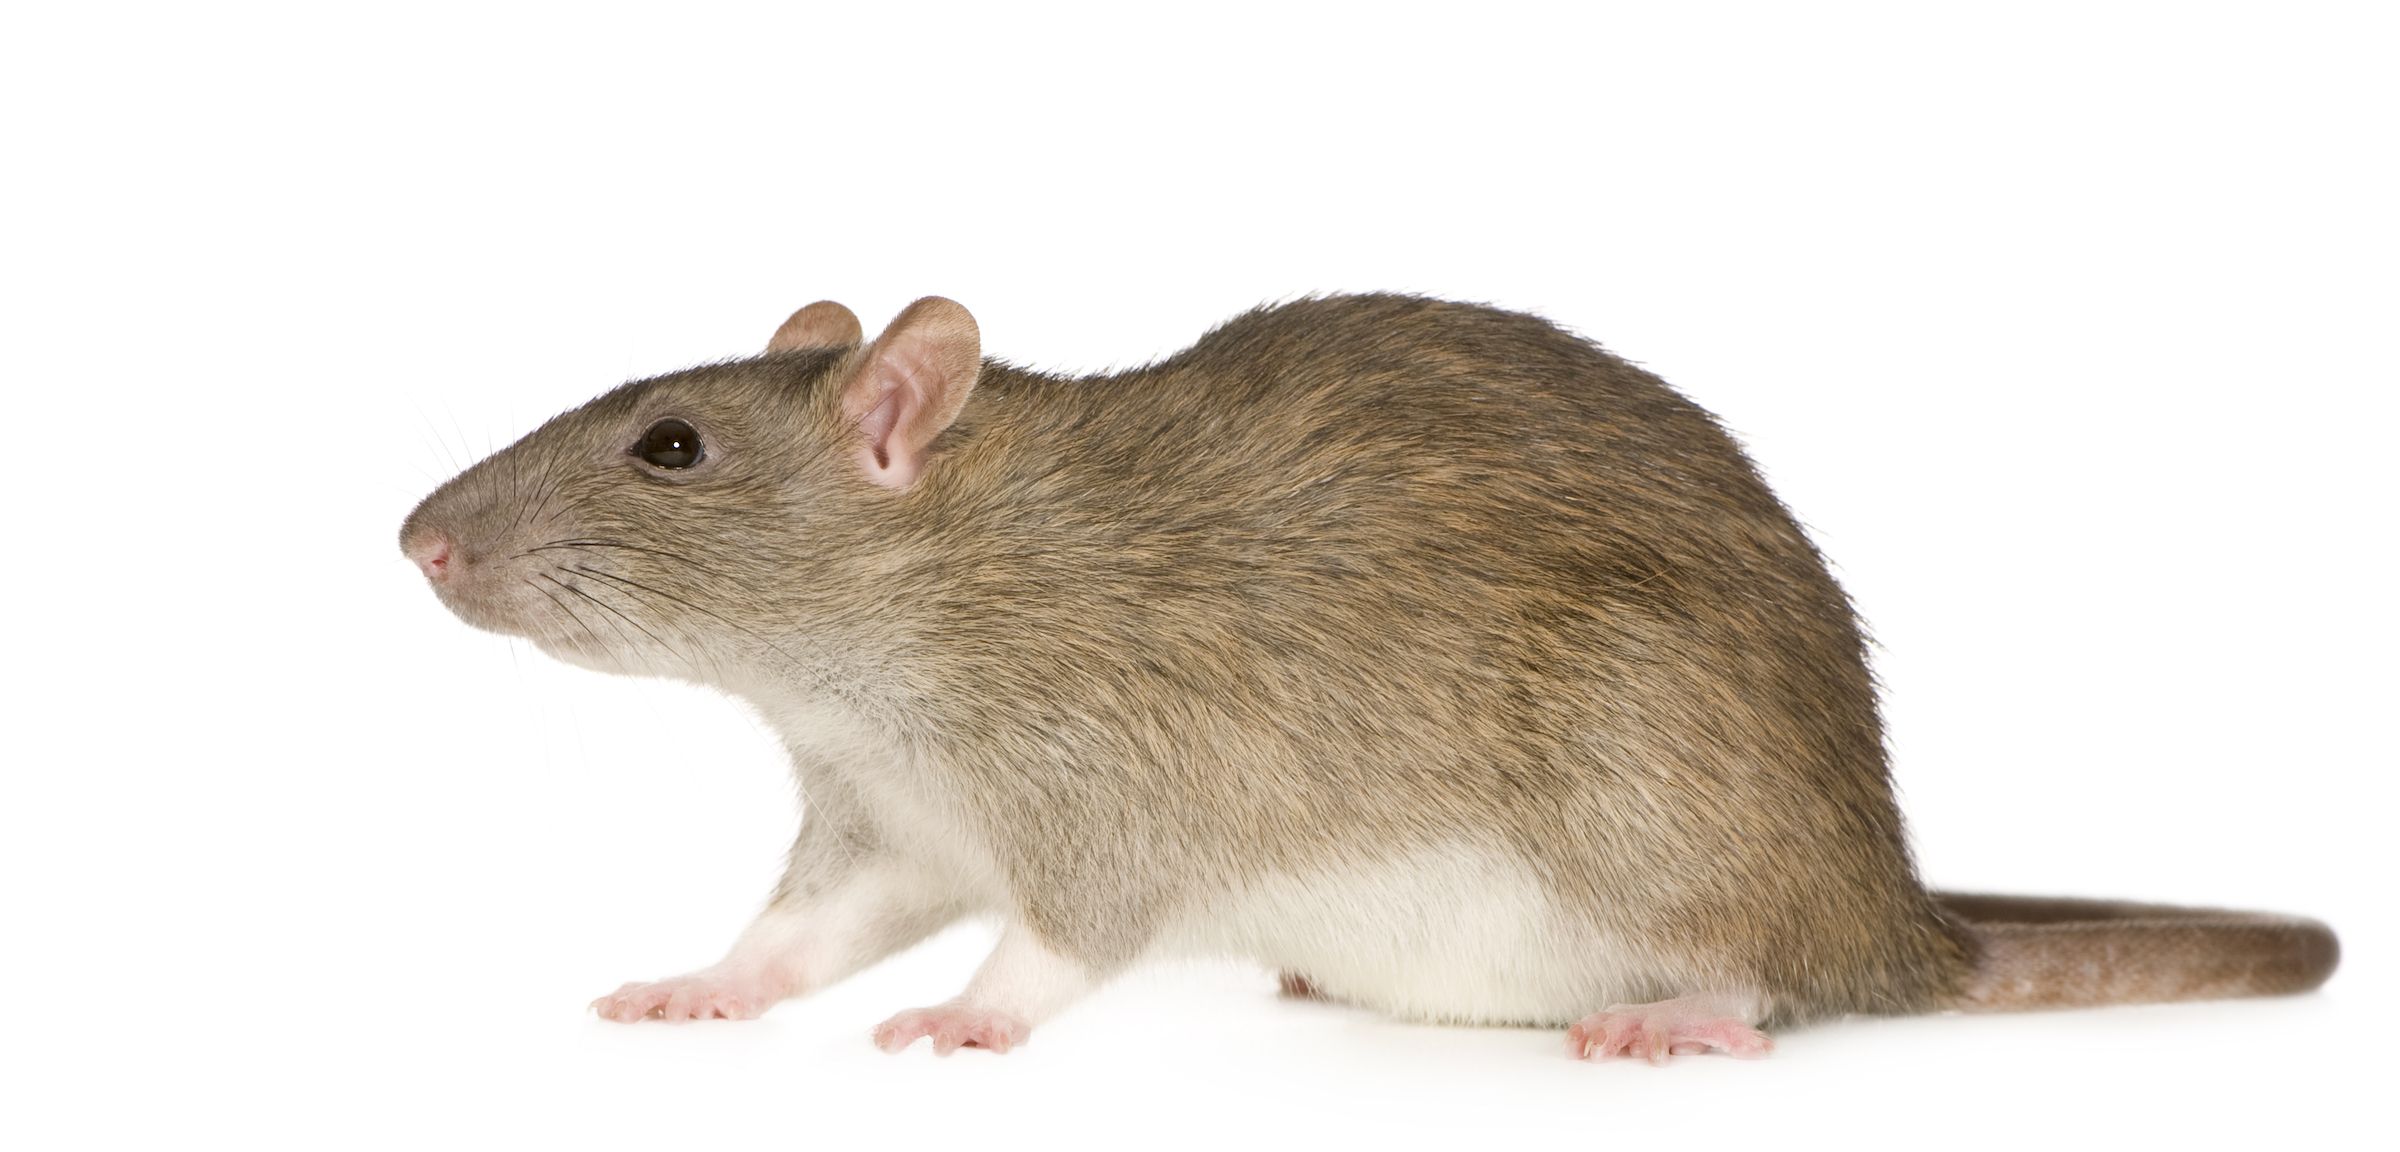 Rodent Removal, Rodent Control, Pest Control New Orleans, Dial One Franklynn Pest Control, Rats, Mice